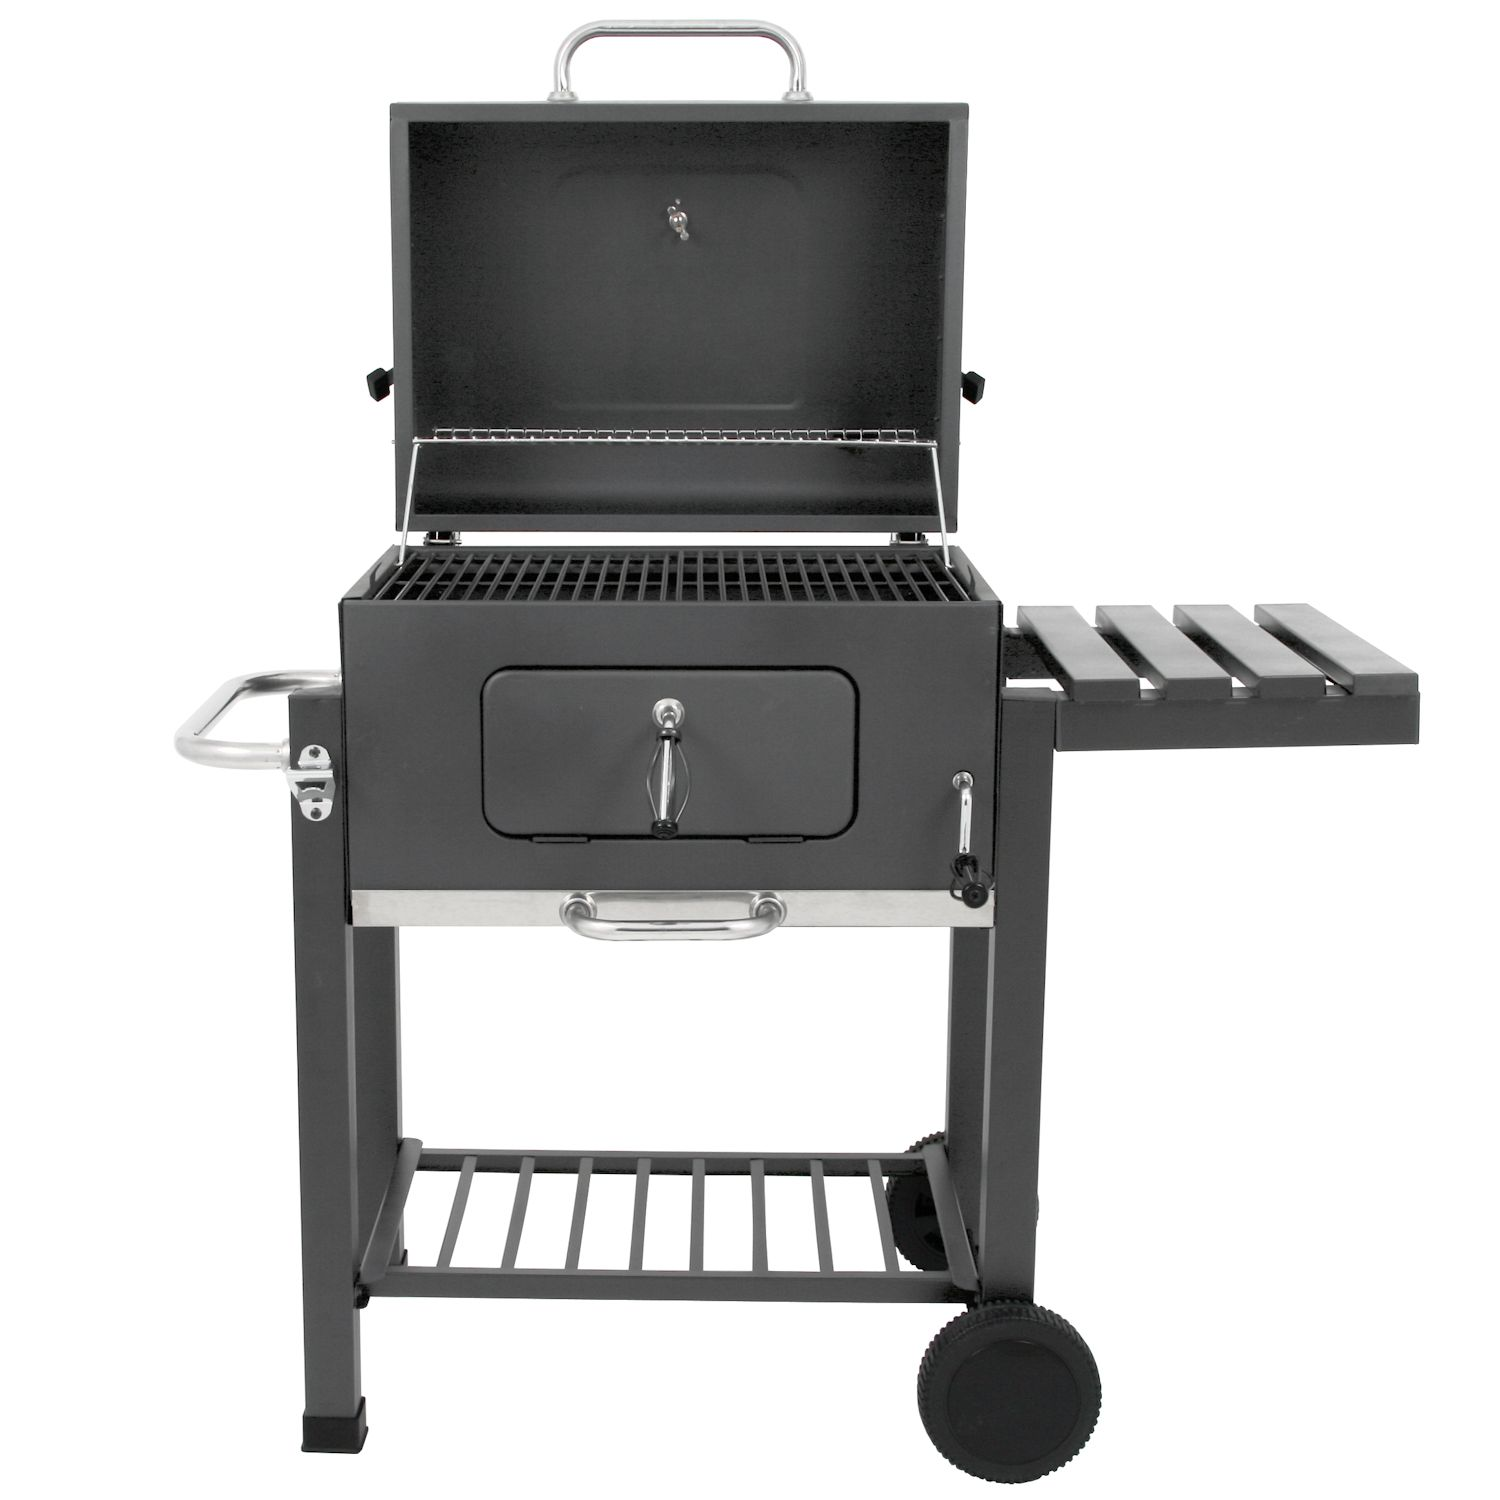 bbq toro holzkohle grillwagen butternut bbq smoker barbecue grill gartengrill ebay. Black Bedroom Furniture Sets. Home Design Ideas